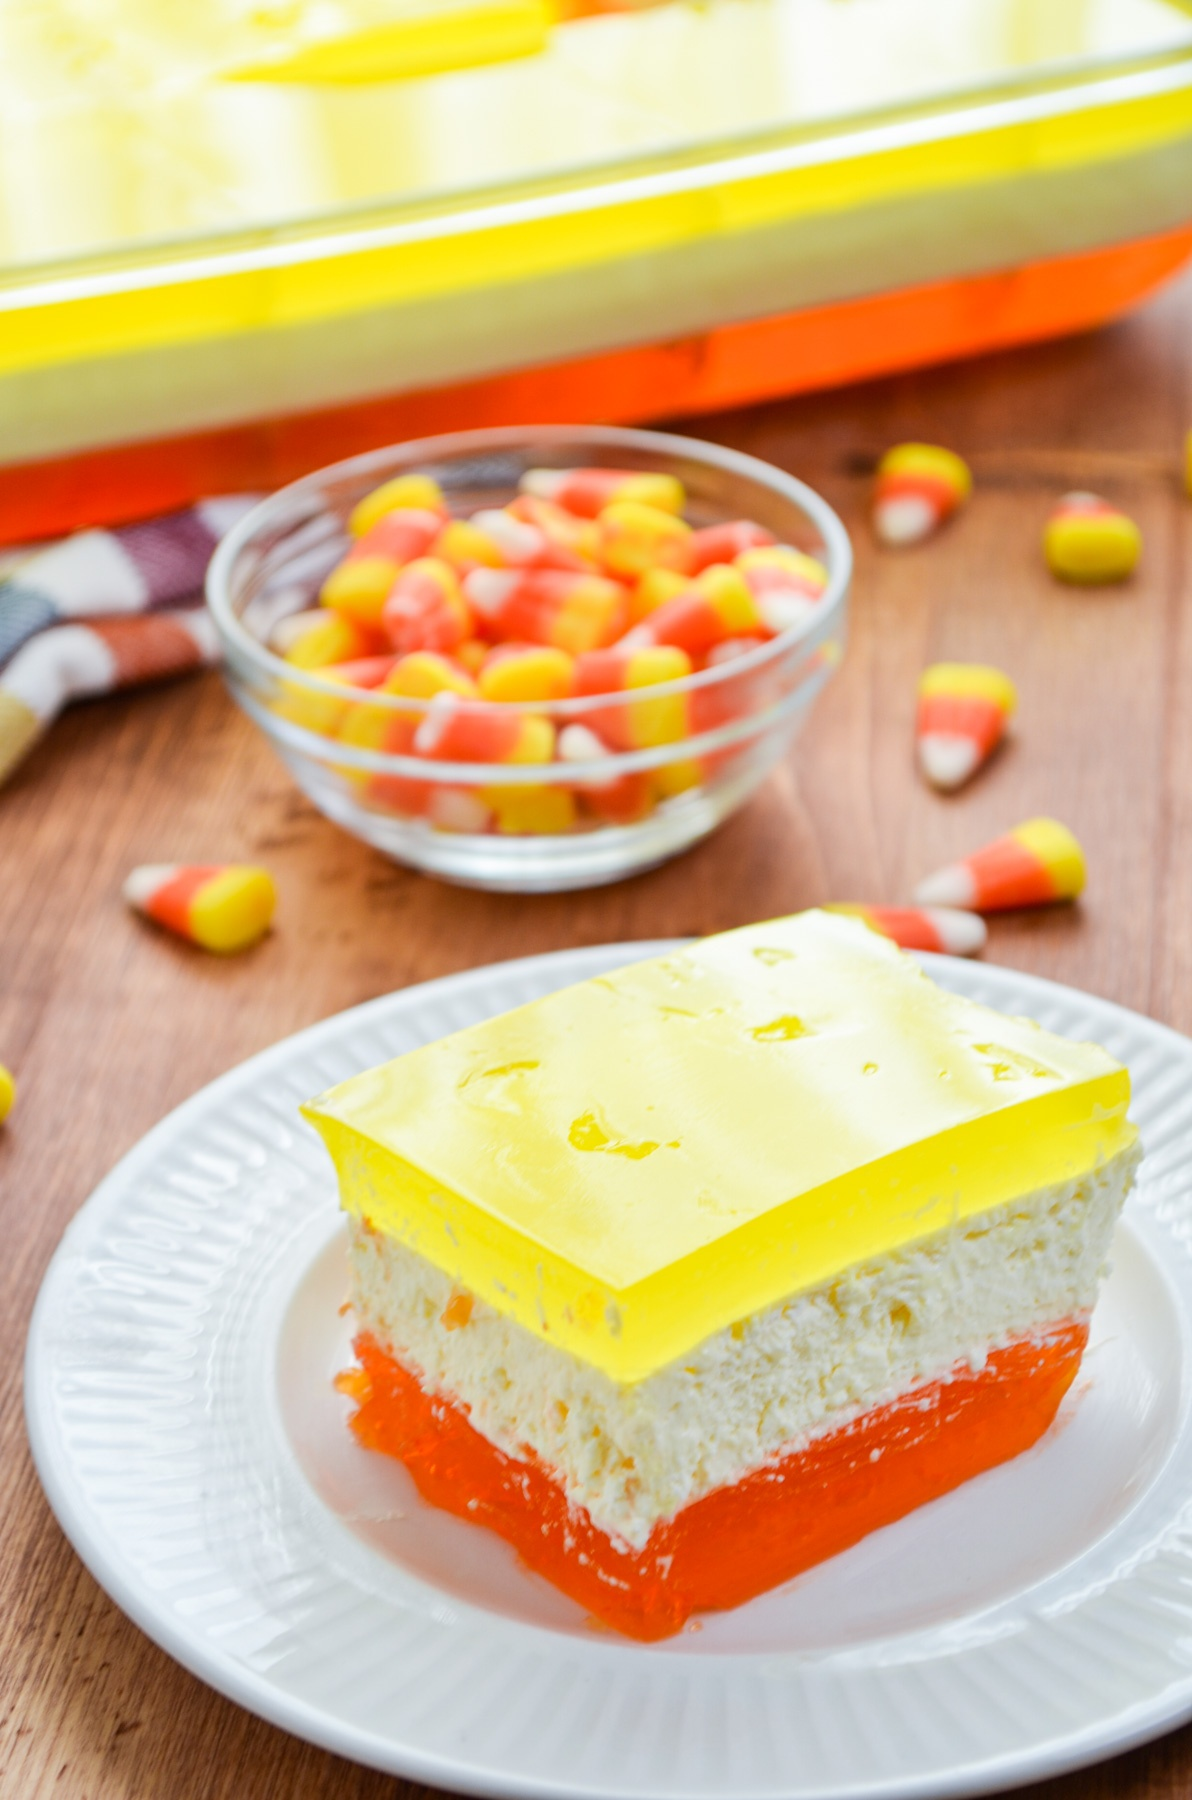 A slice of 3 layered halloween jello, with candy corns scattered in the background.